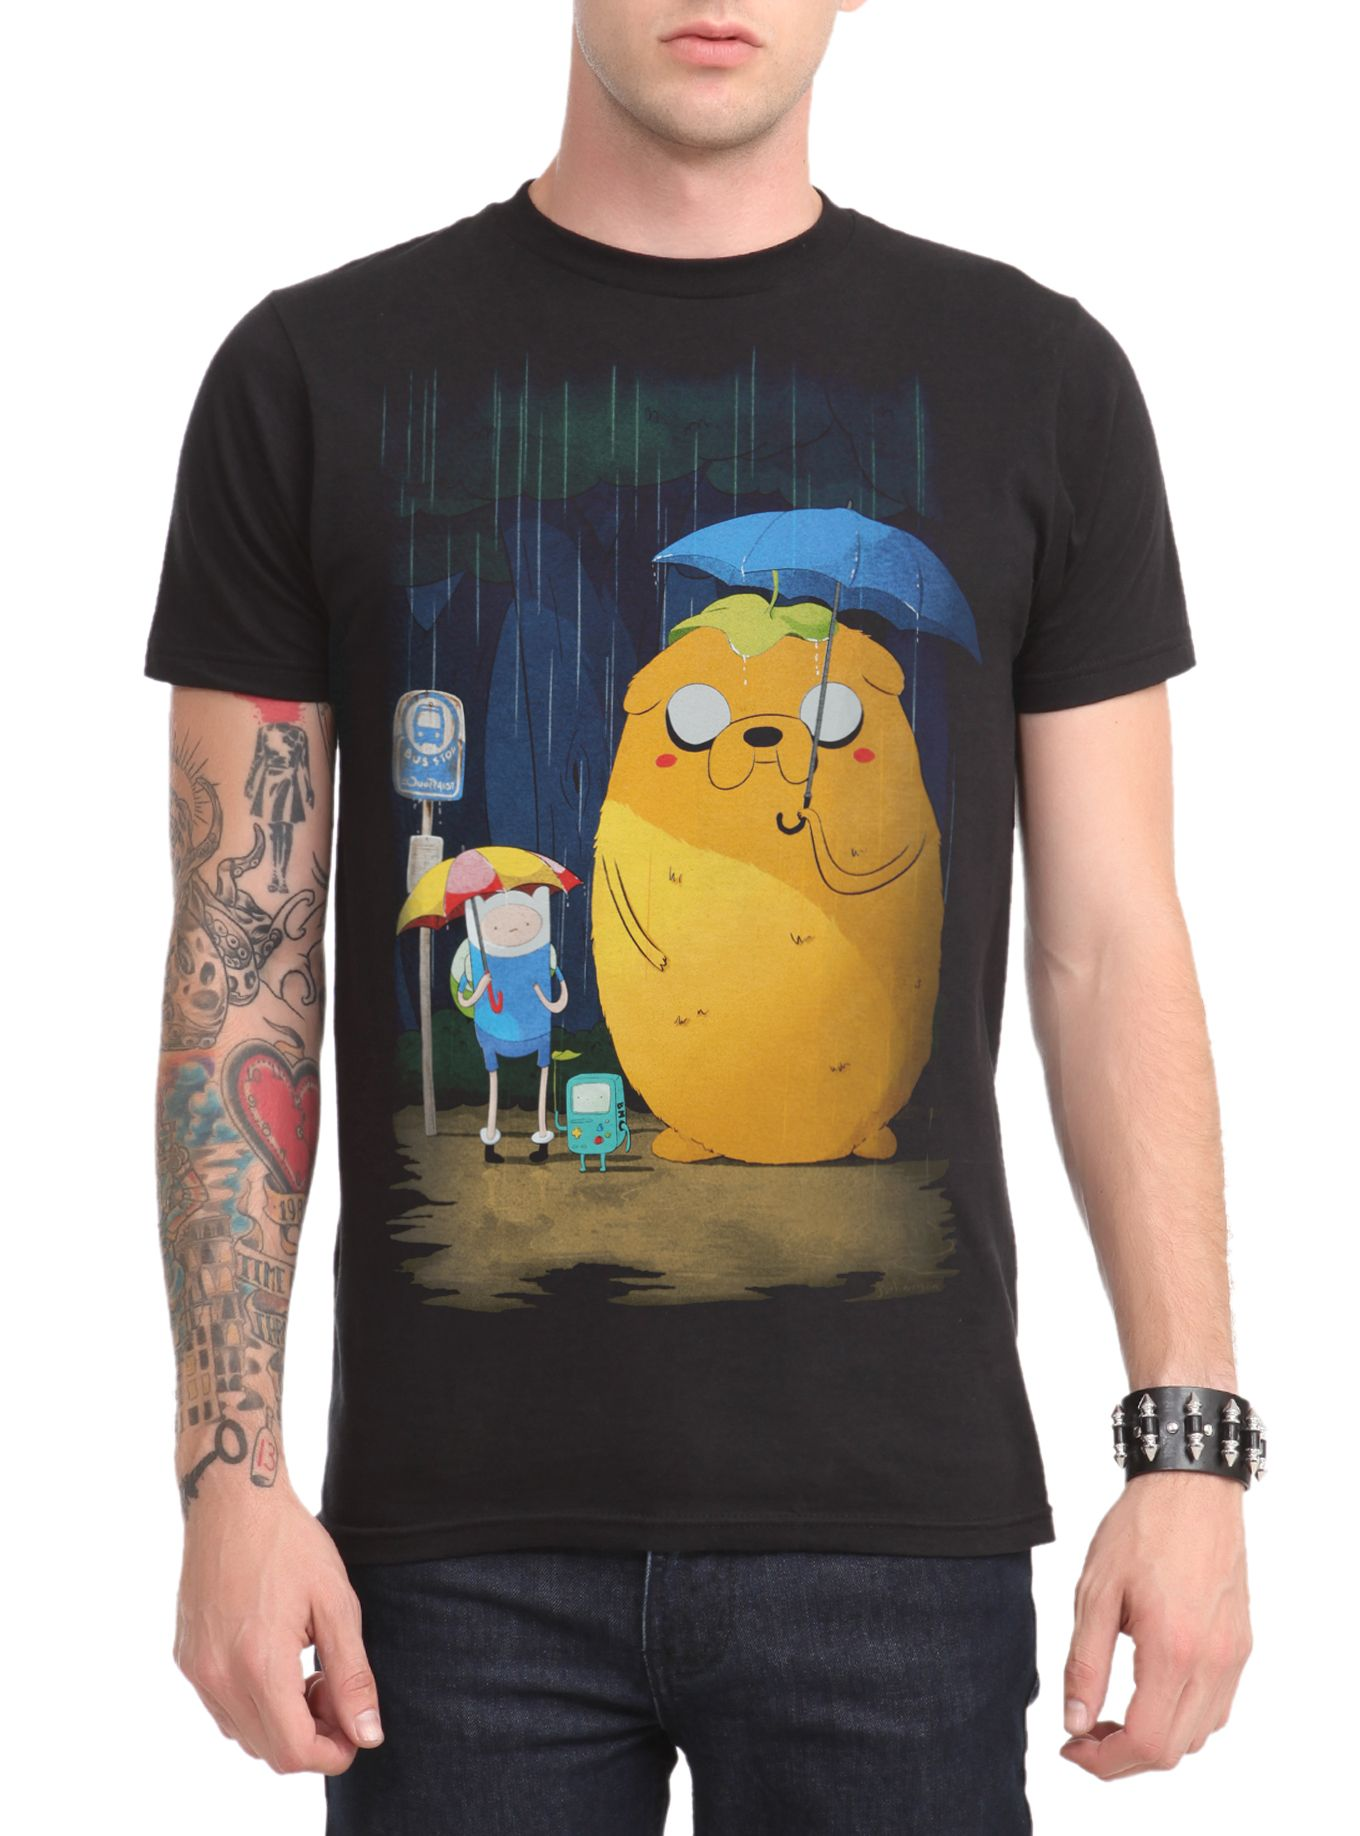 208c29e29 Absolutely epic tshirt. On sale at Hot Topic, the teenage angst mall store.